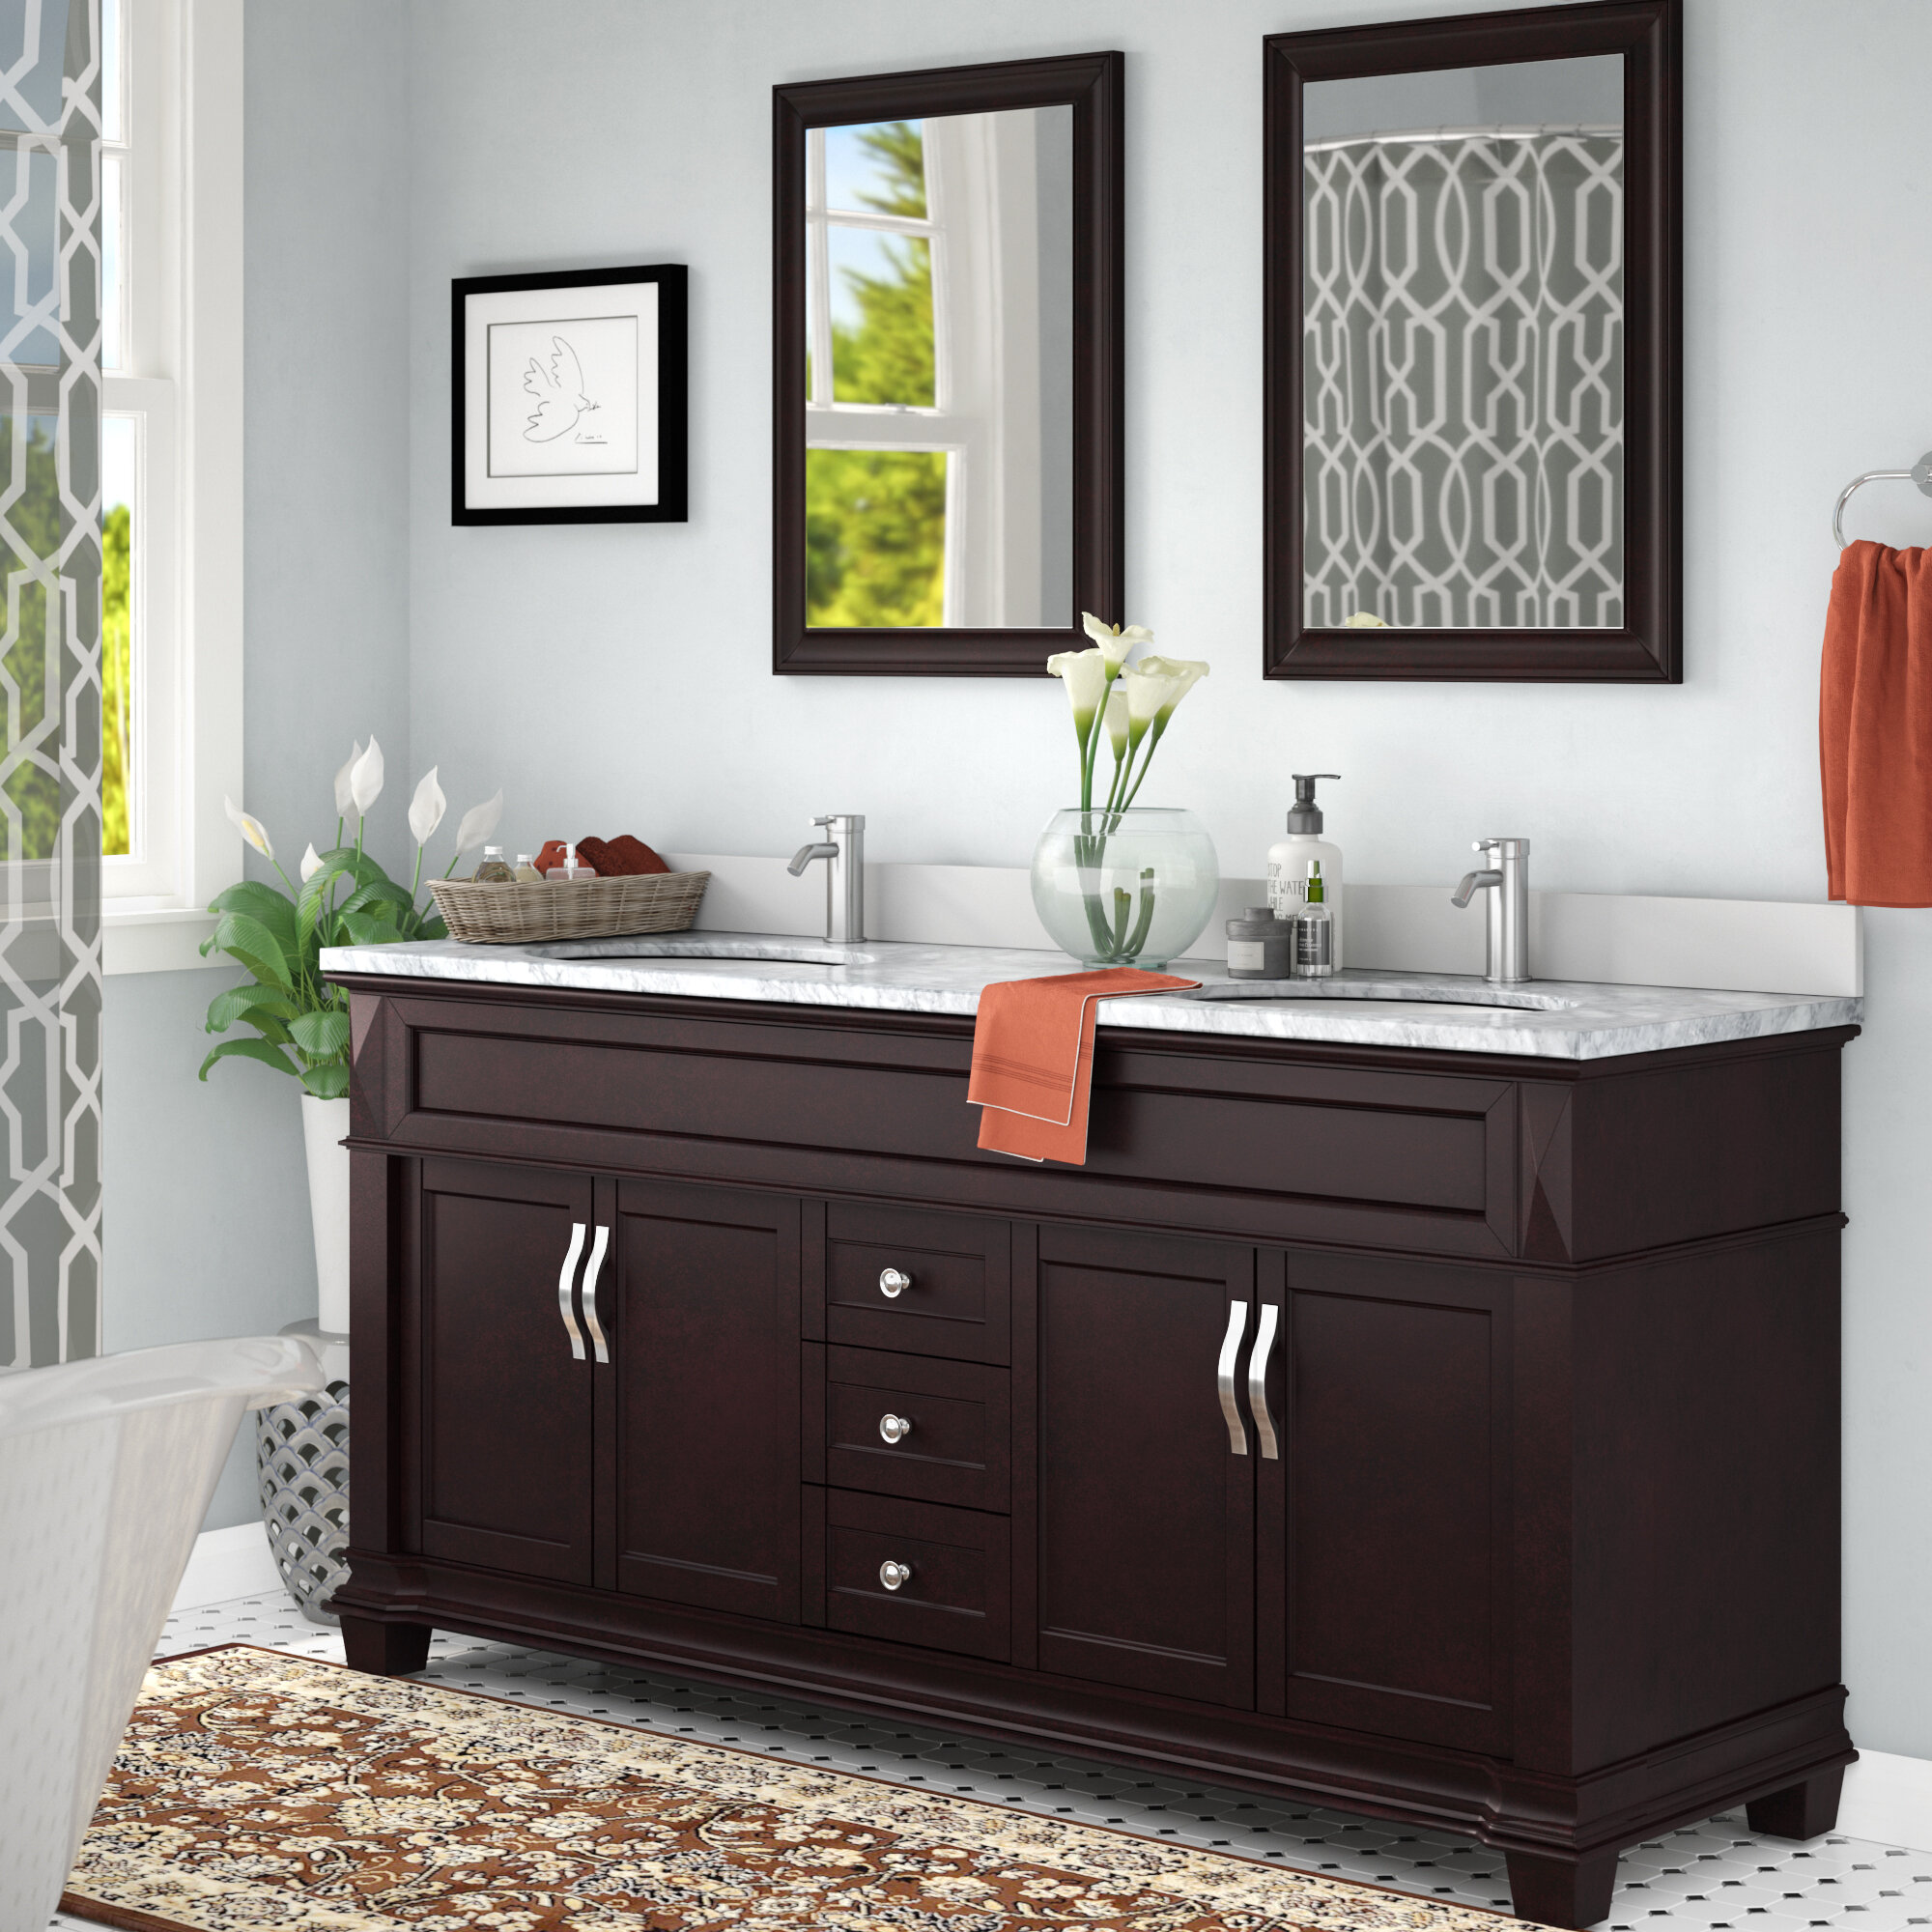 Darby Home Co Kace 72 Double Bathroom Vanity Set With White Marble